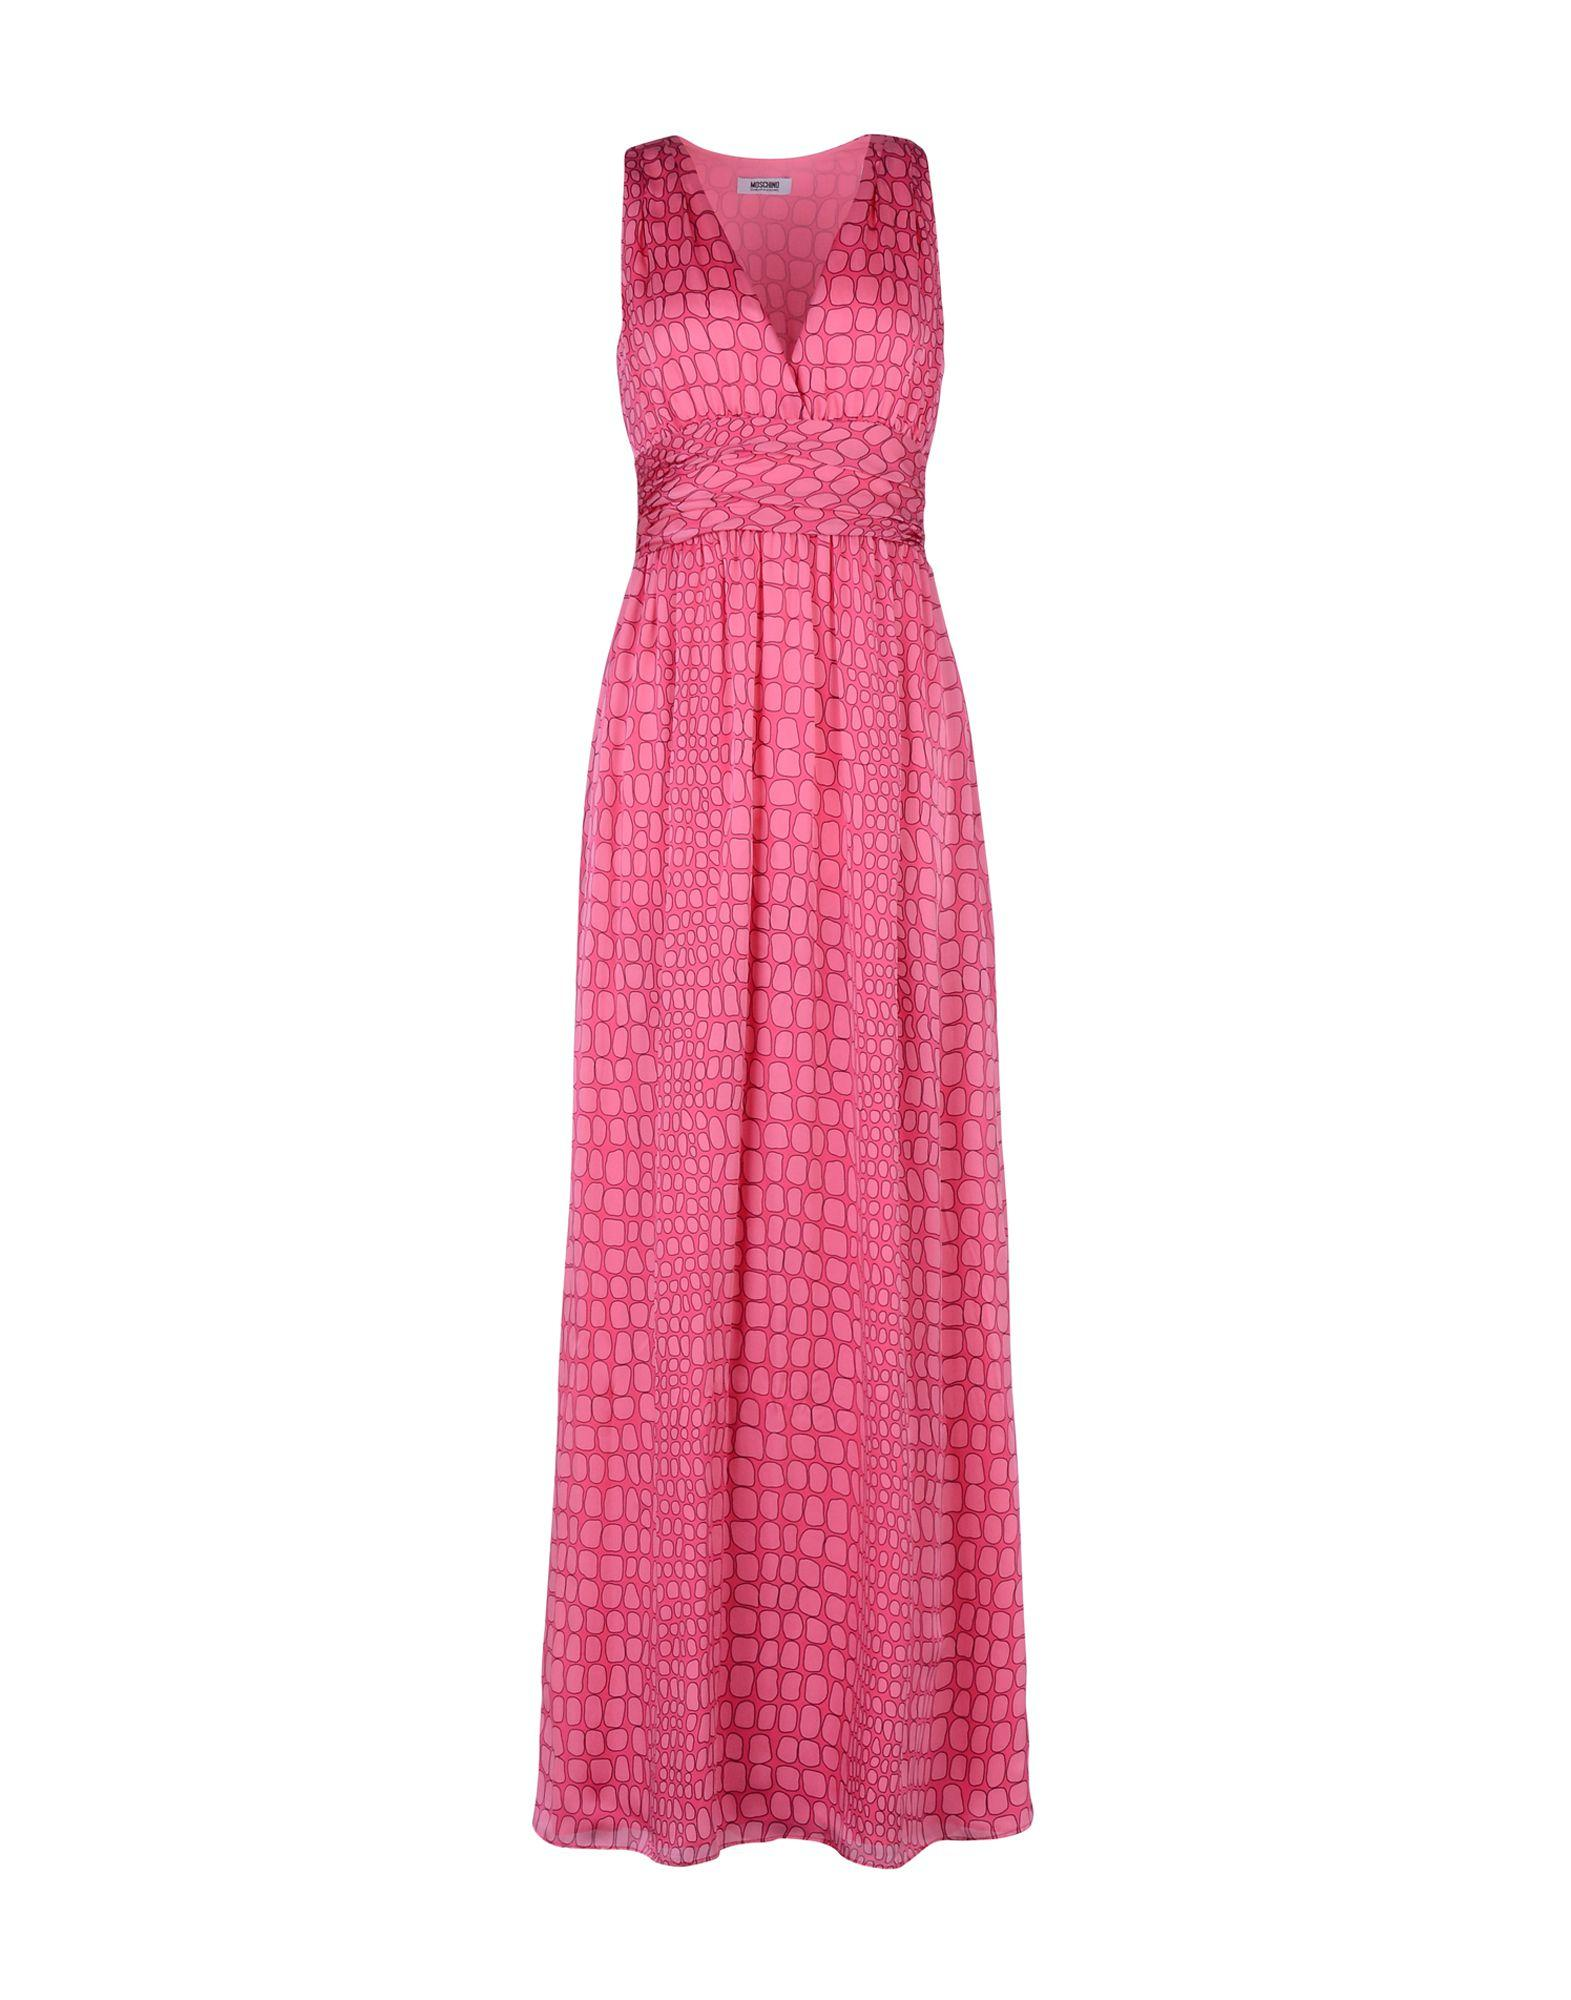 Moschino Cheap And Chic Long Dress In Fuchsia